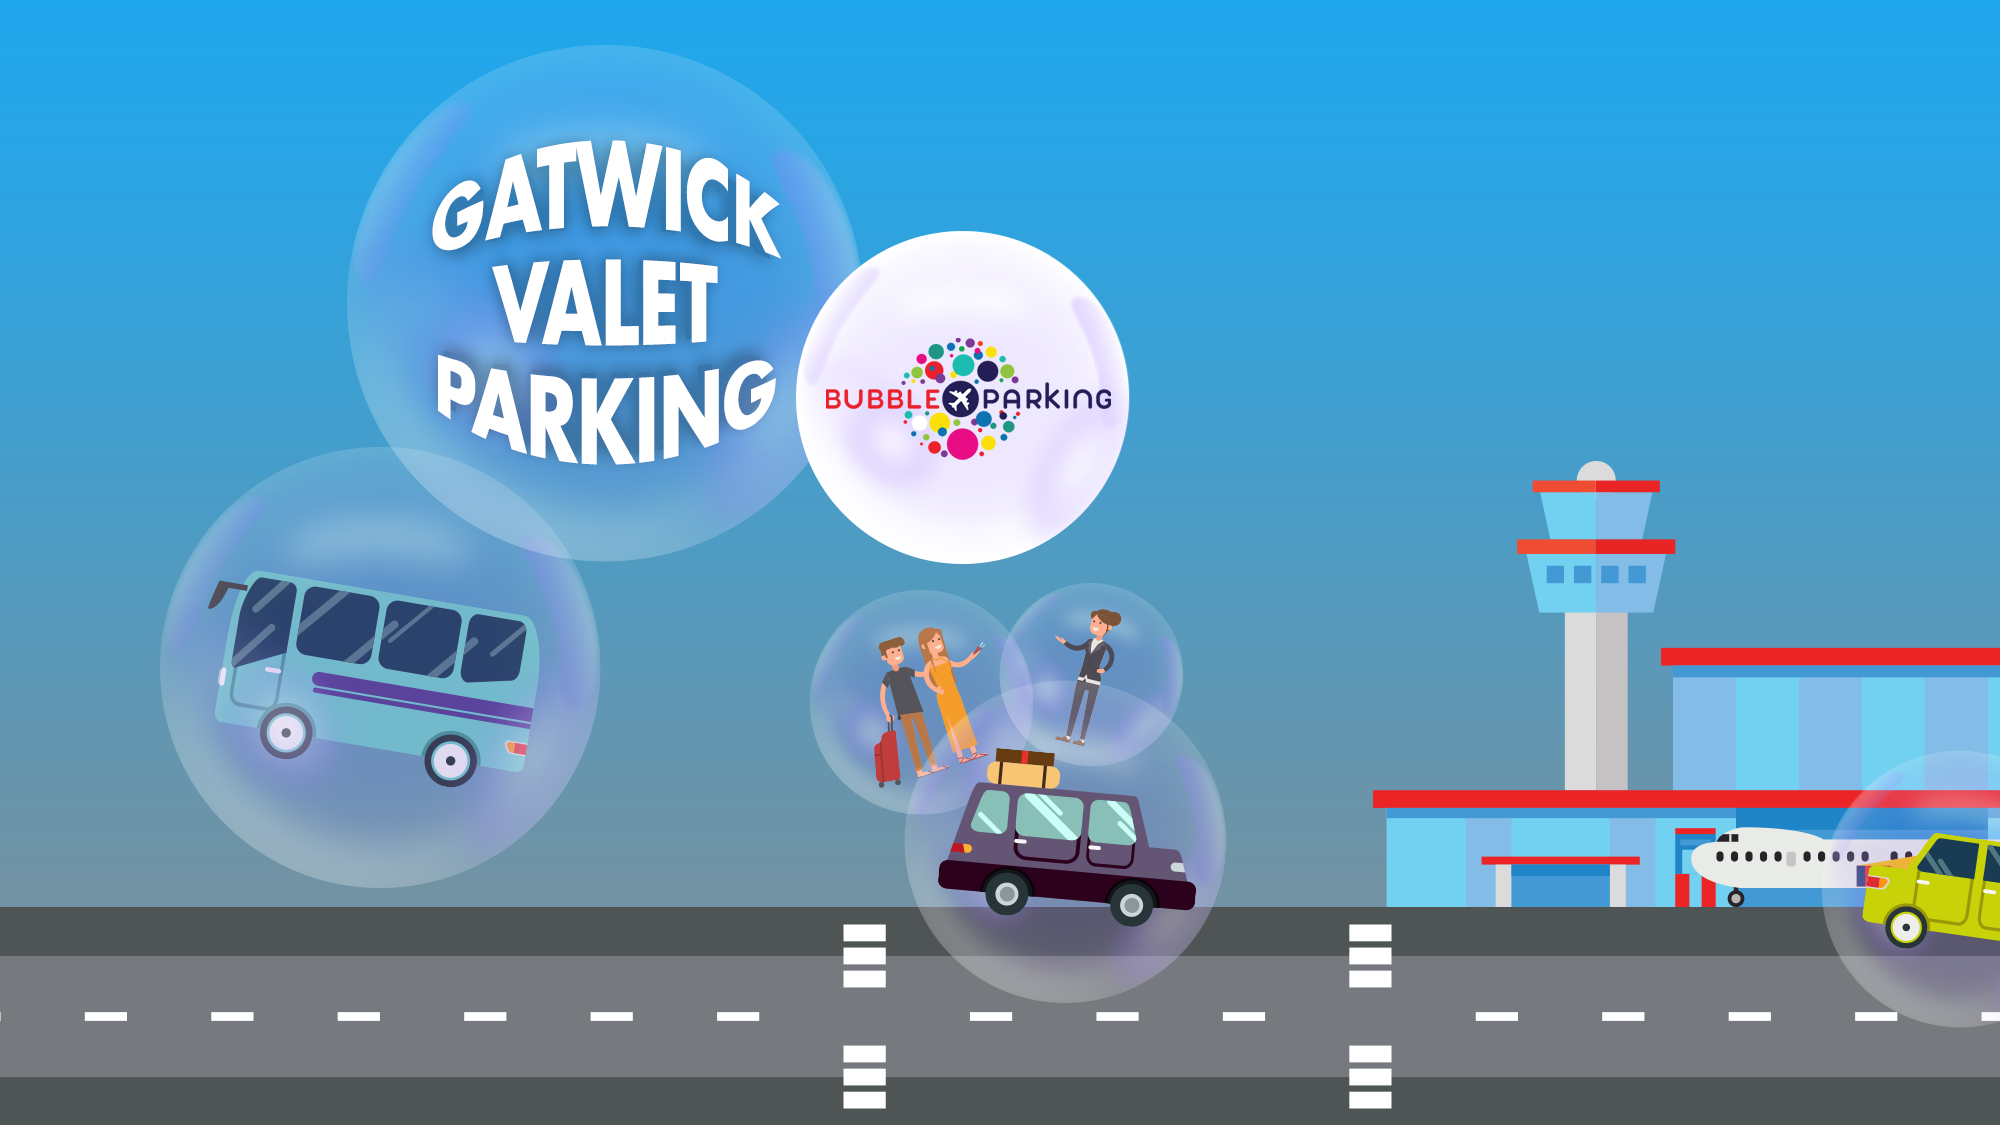 Bubble parking valet parking i love bubble valet parking gatwick m4hsunfo